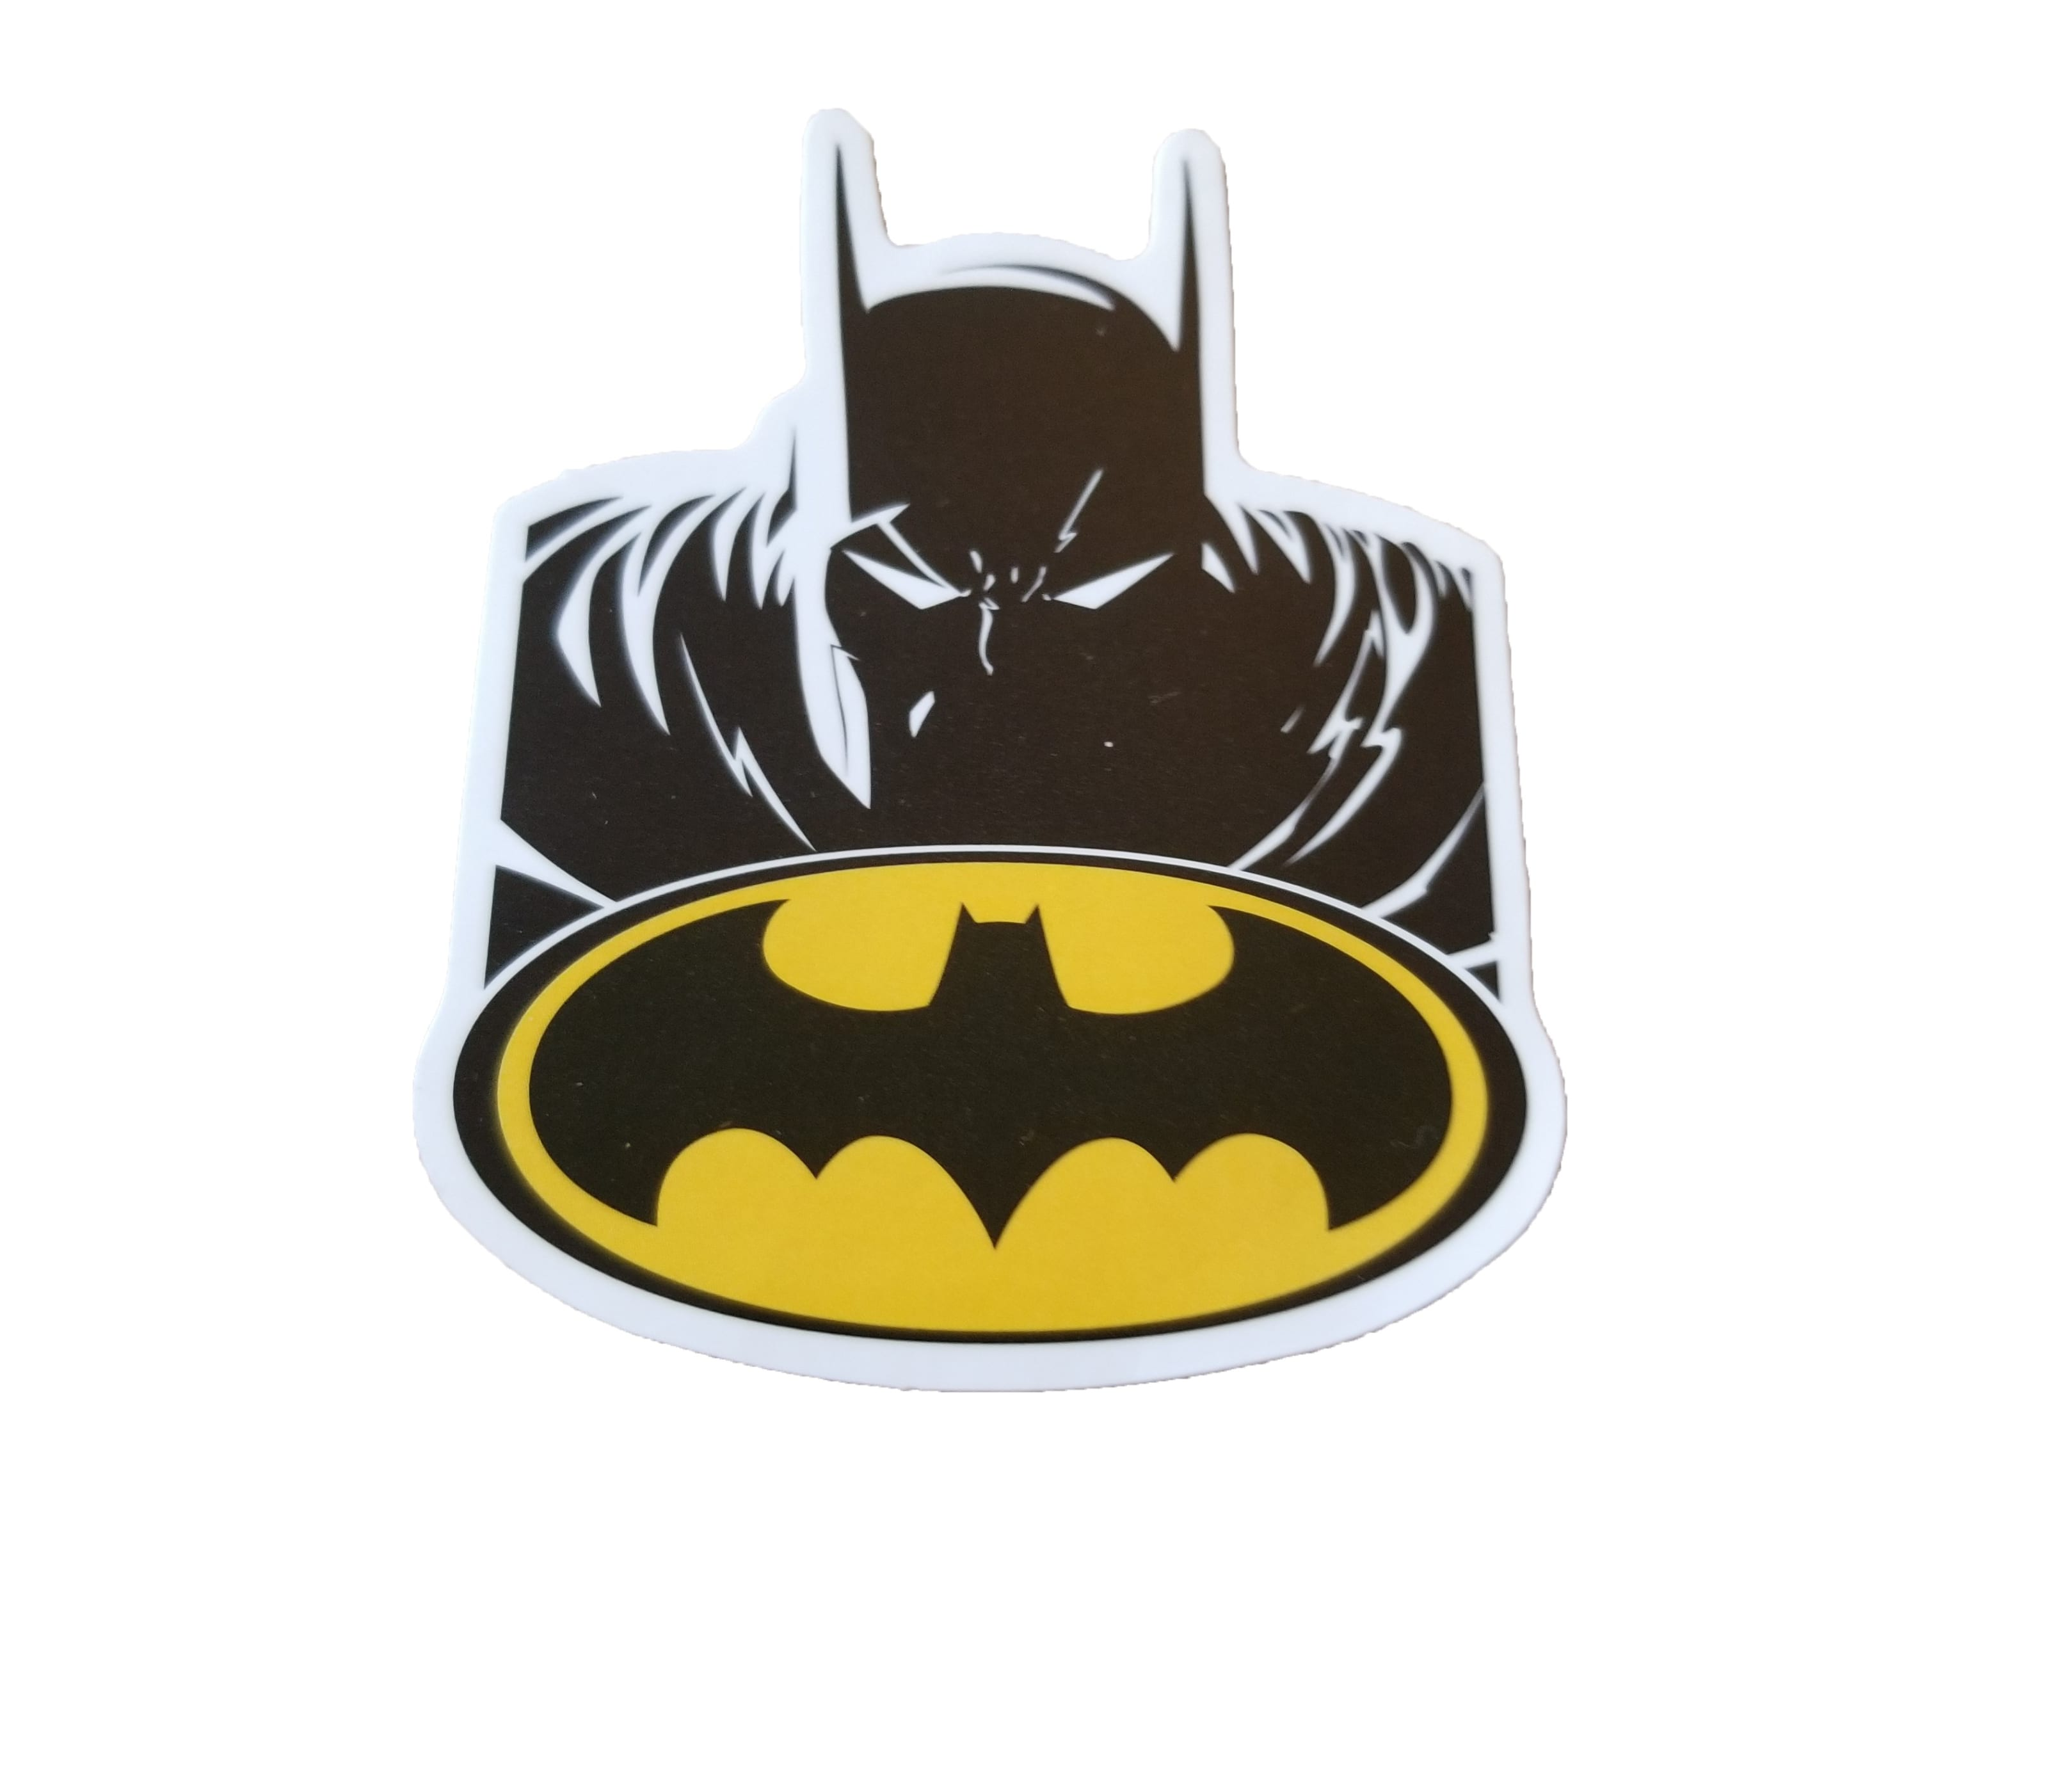 Bat logo with Batman above it